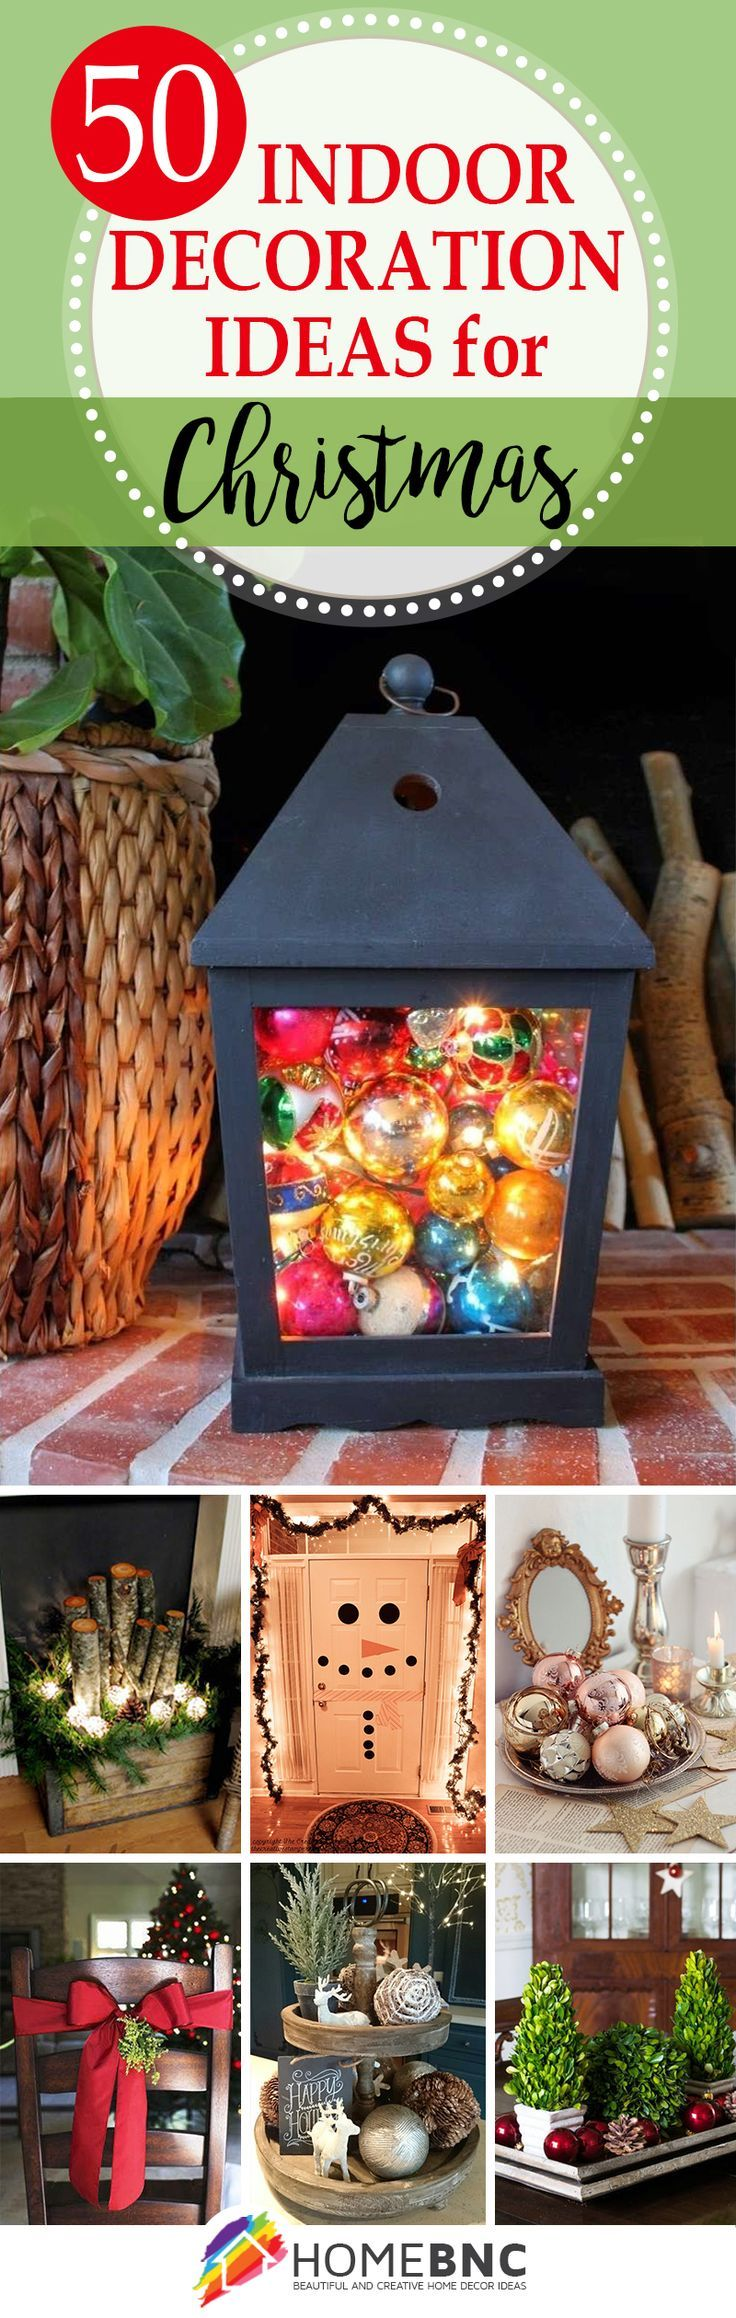 Indoor Christmas Decorations (Diy Christmas Recipes)